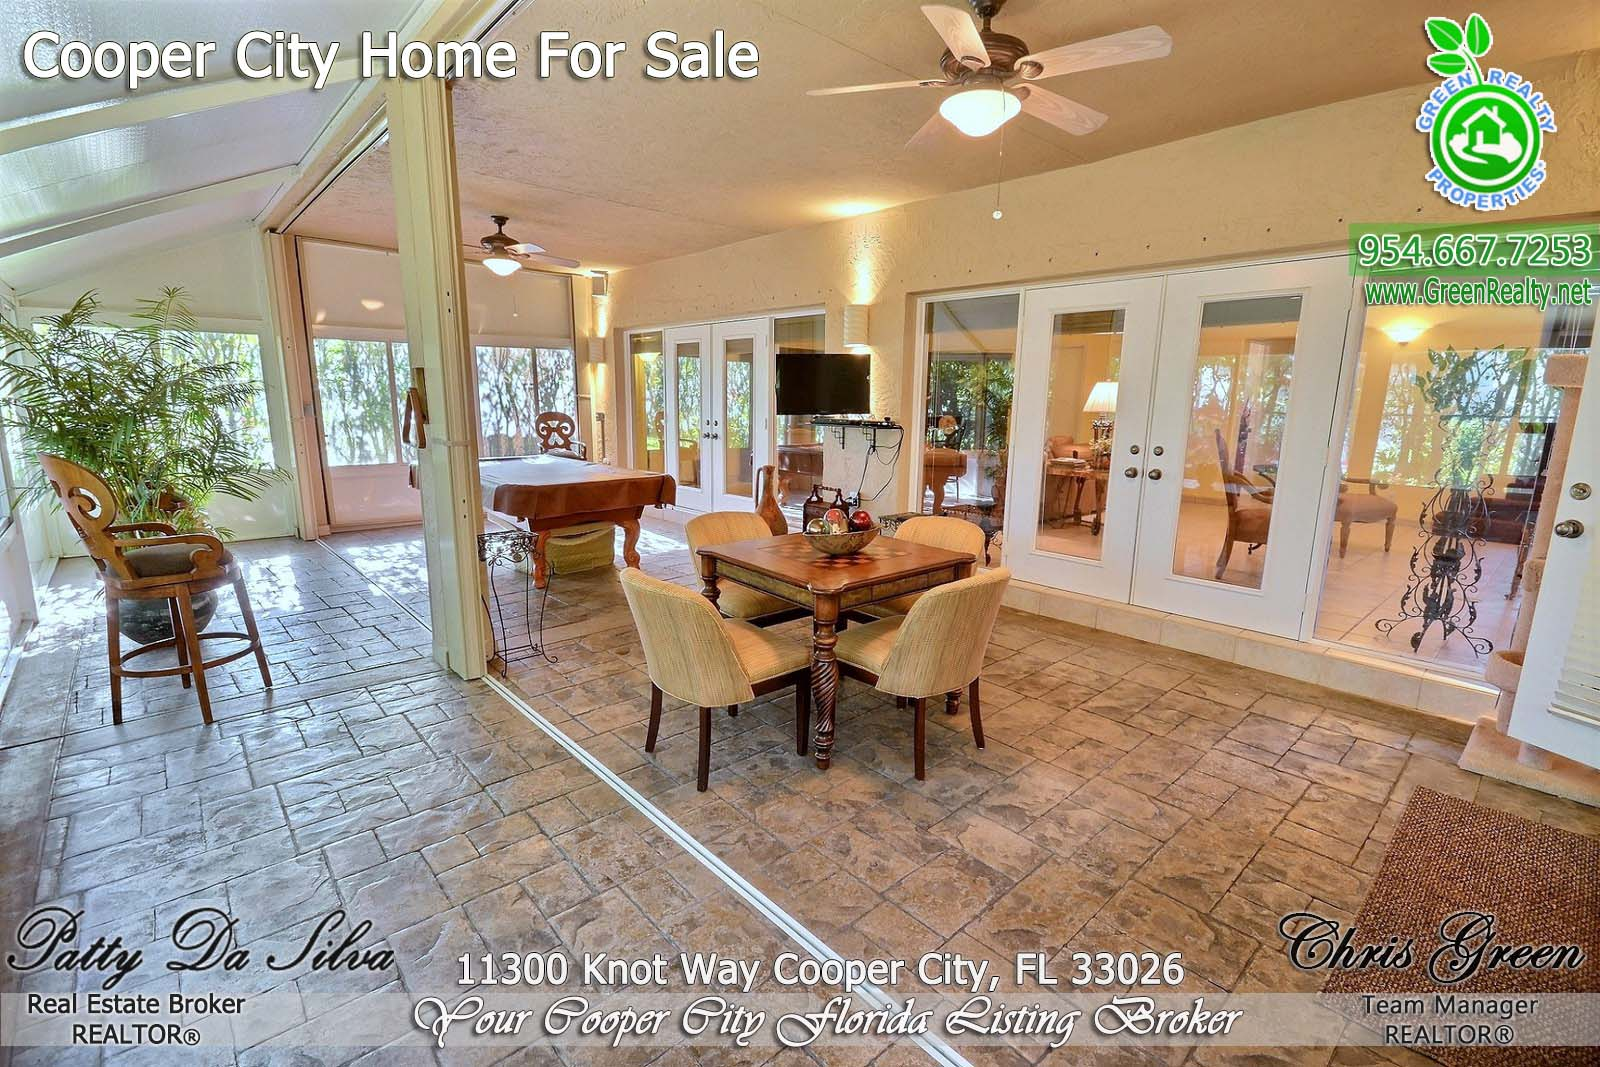 44 Rock Creek Cooper City Homes For Sale (2)